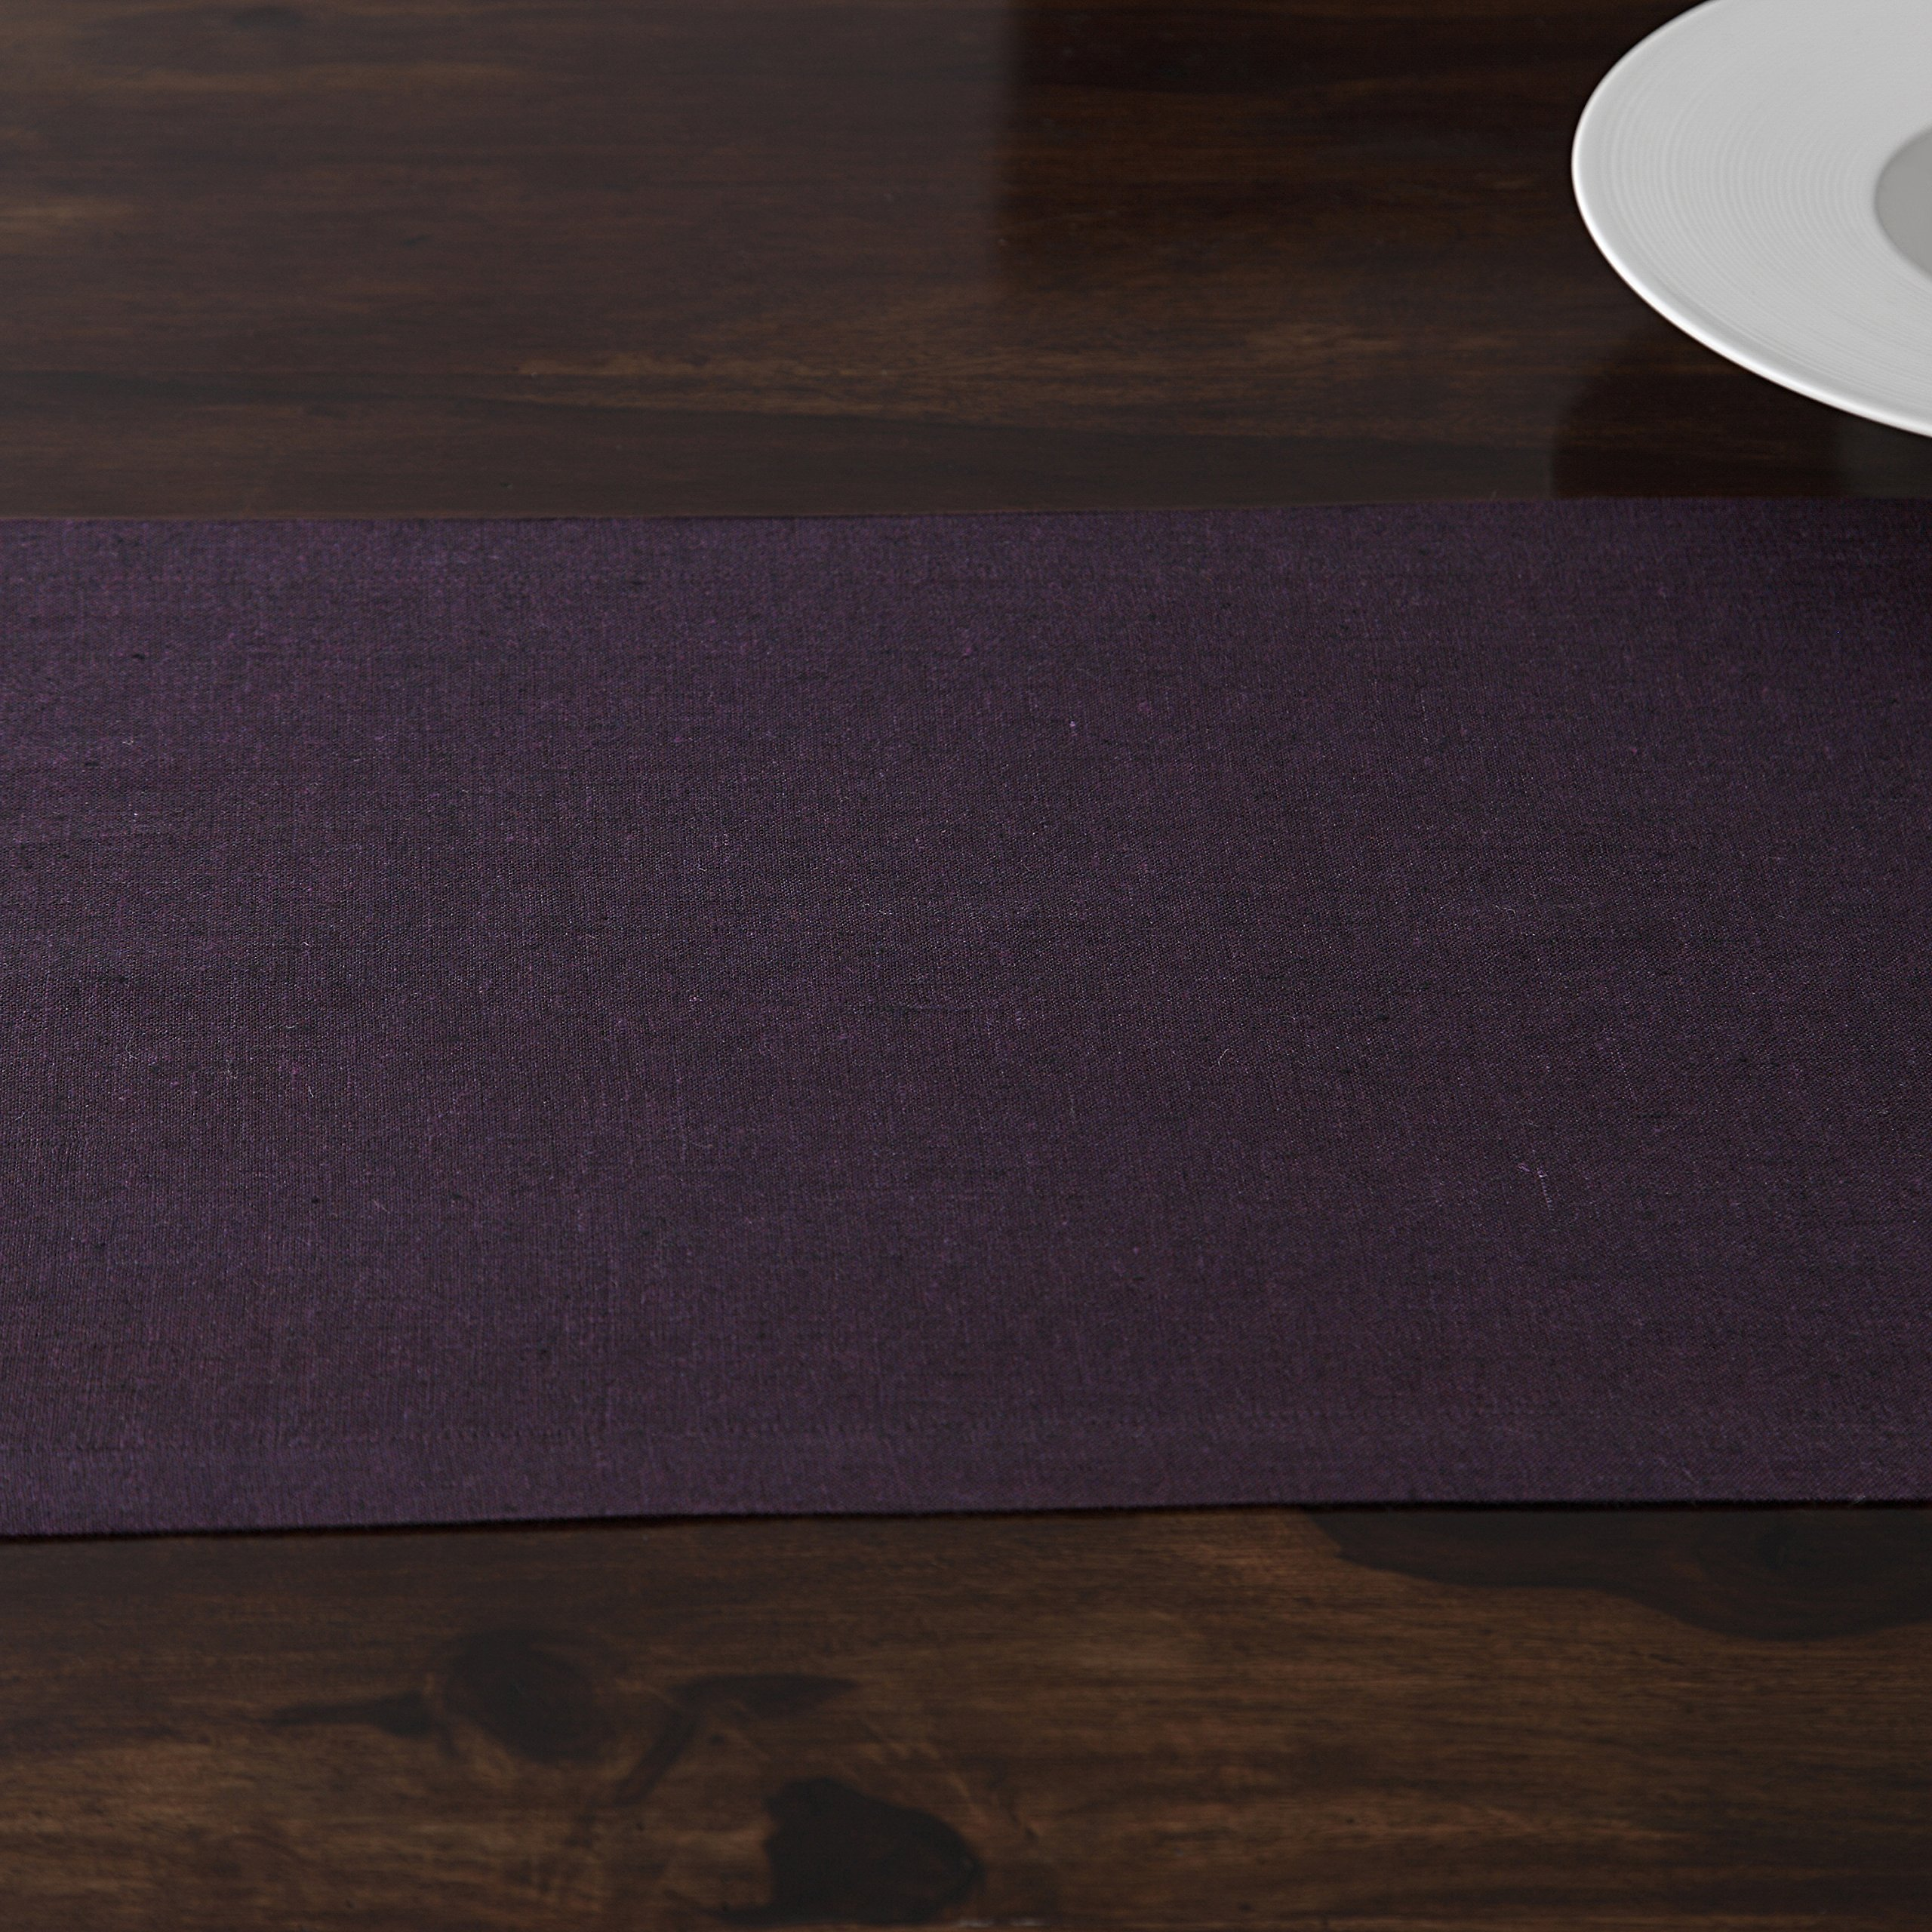 Solino Home 100% Pure Linen Table Runner Athena, Natural Fabric Handcrafted Runner, Purple 14 x 36 Inch by Solino Home (Image #4)